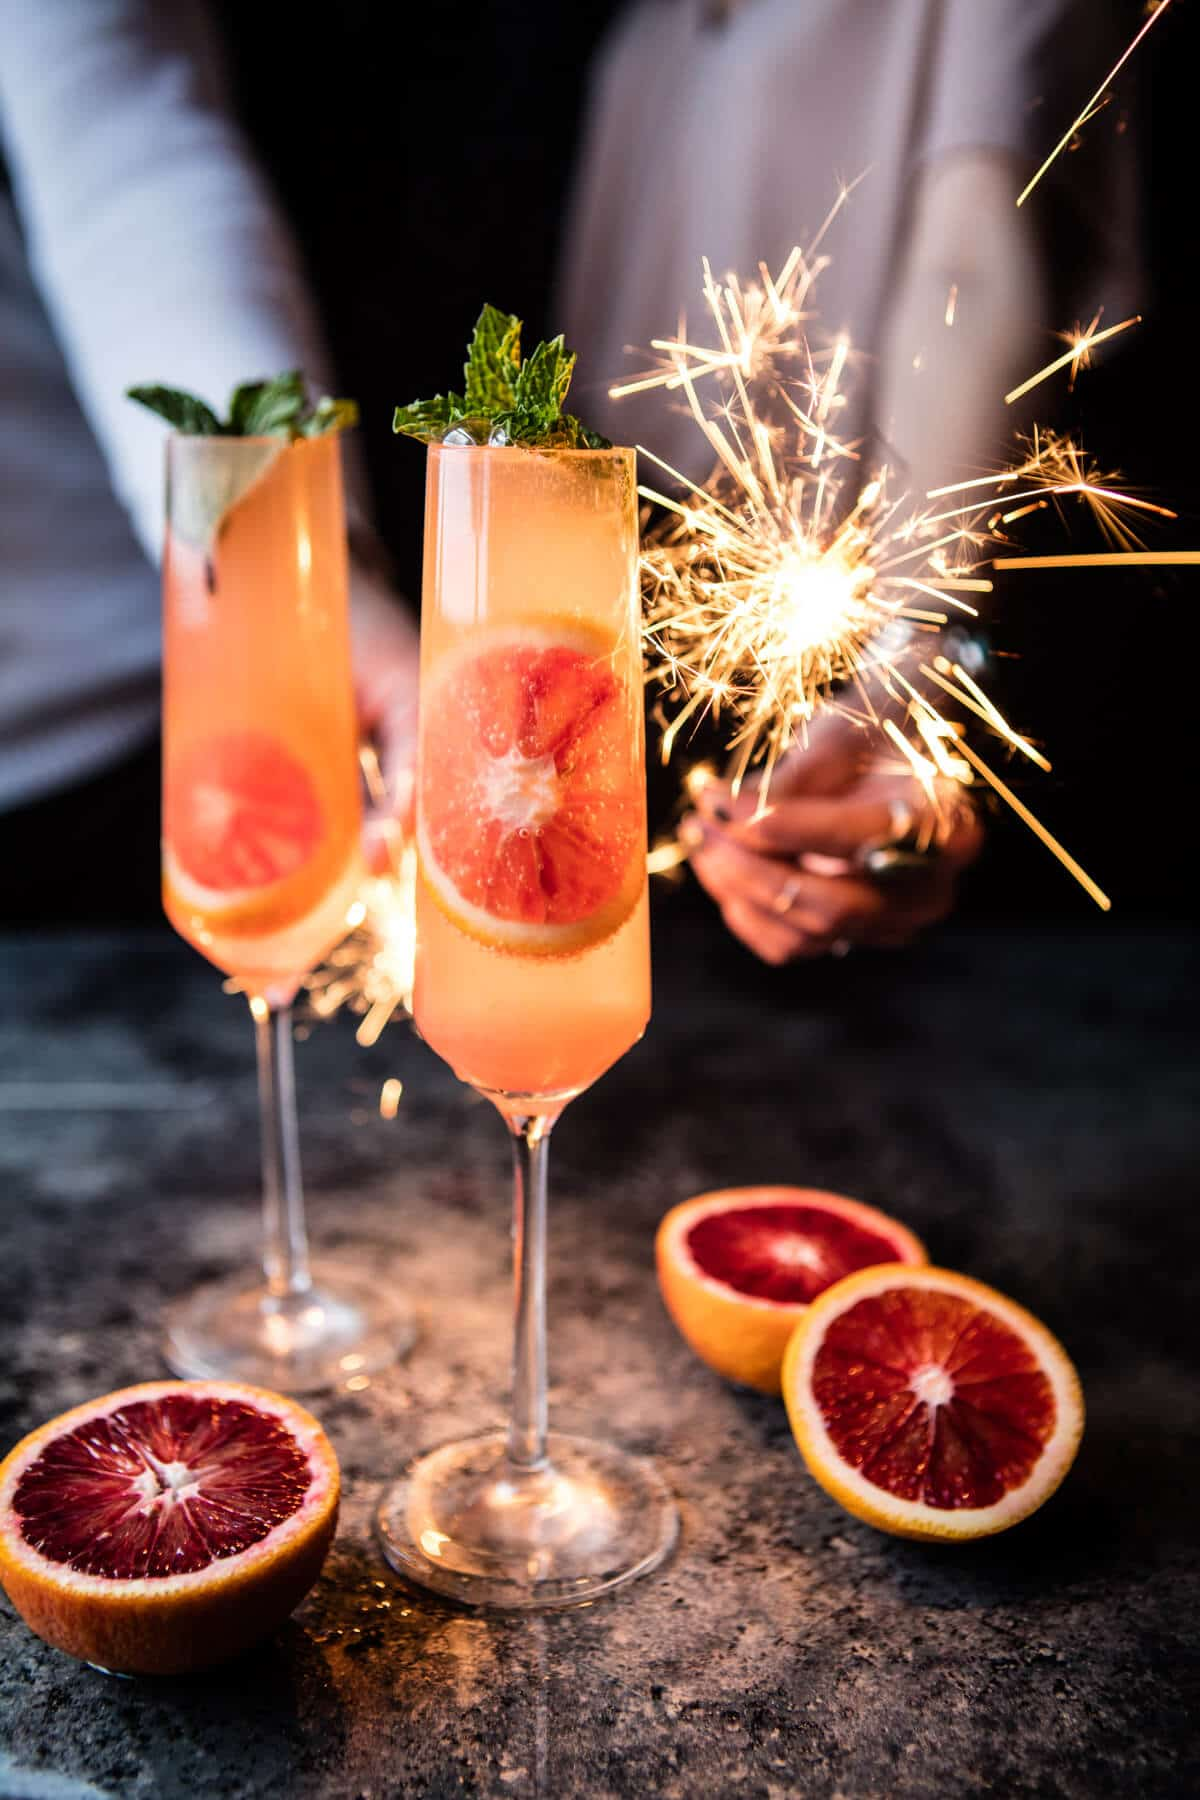 Vegan Blood Orange Champagne Mule // This delicious champagne mule is the perfect New Year's Eve drink you can come up with. The wonderful taste is complemented by the decorative slices of blood orange, creating a truly festive experience. | The Green Loot #vegan #partyideas